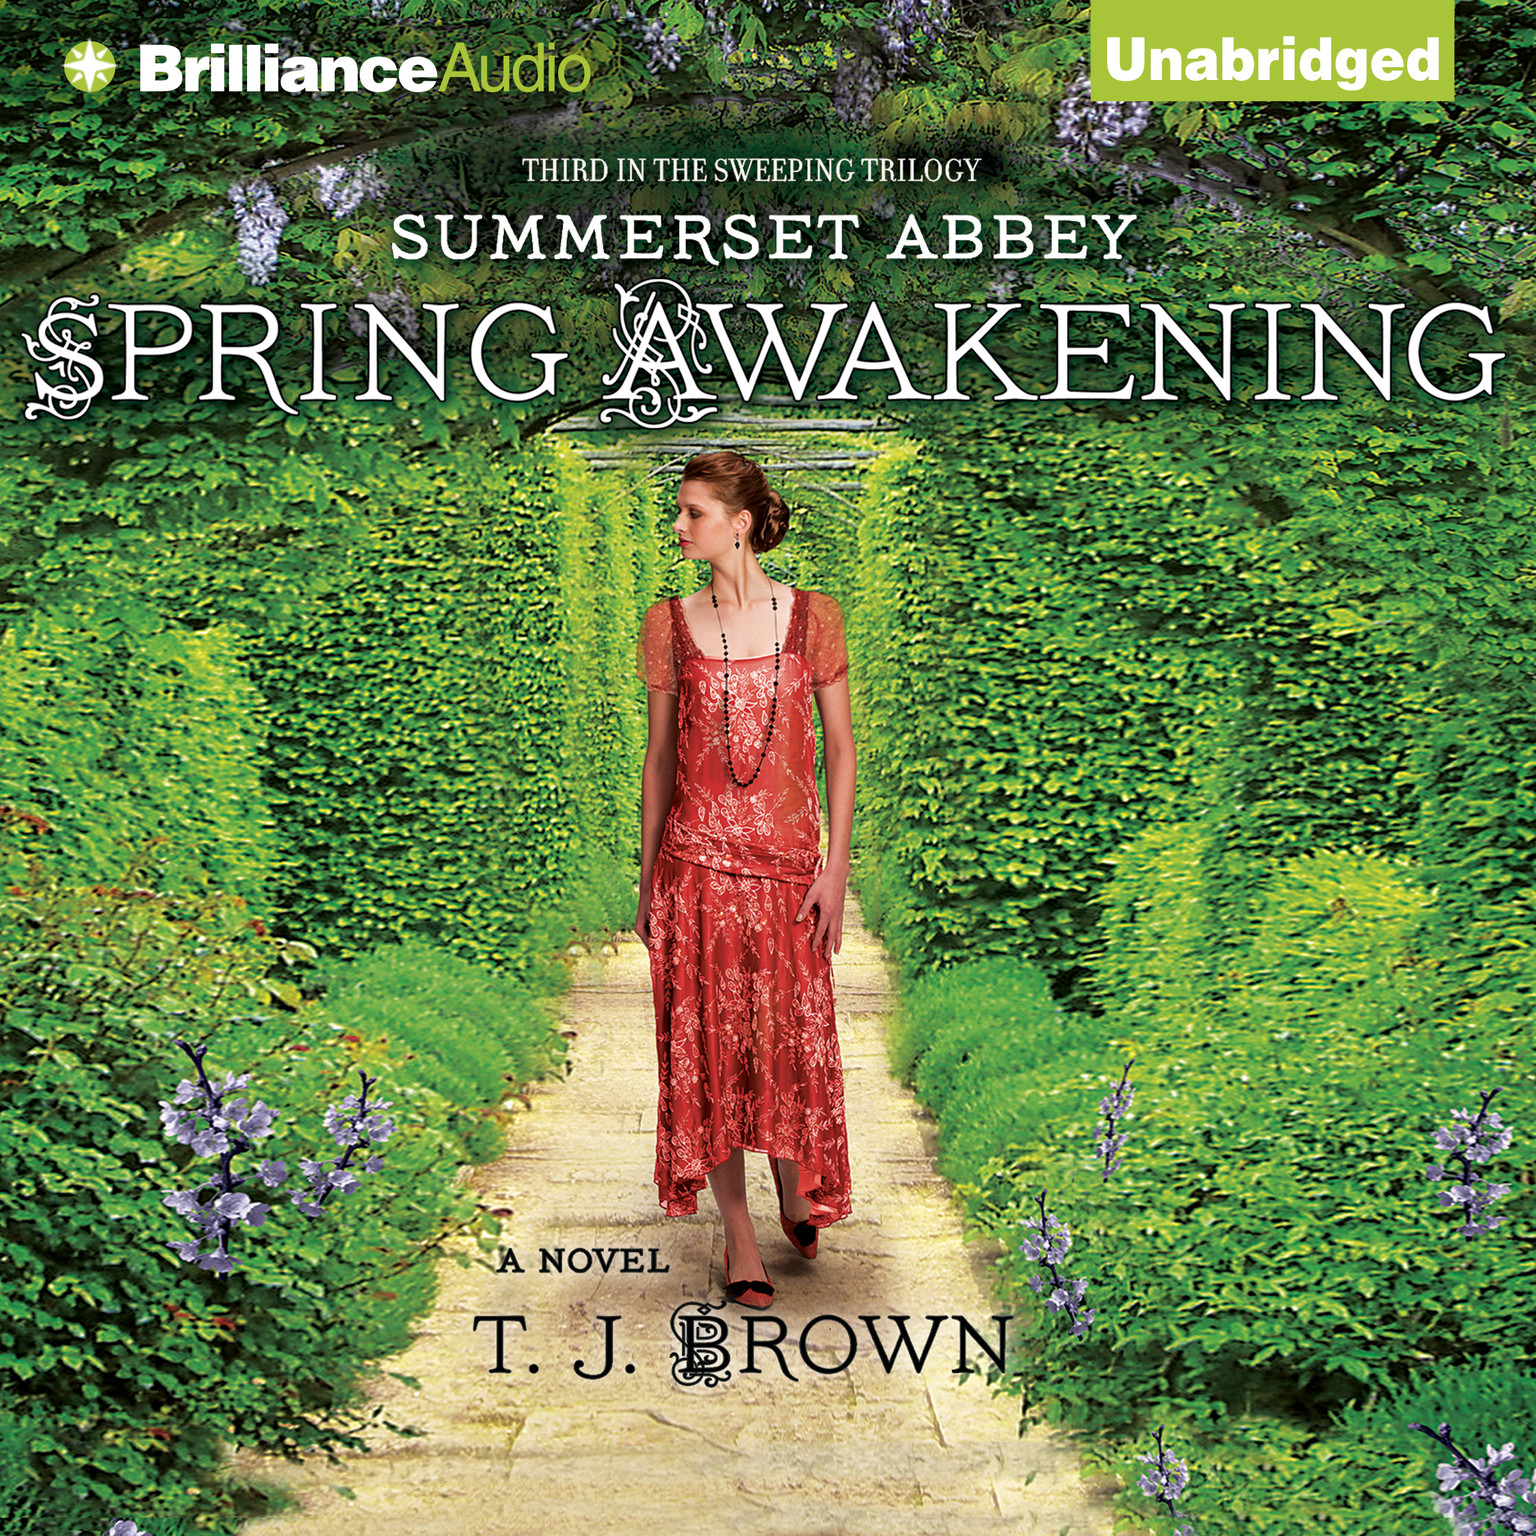 Printable Spring Awakening: A Novel Audiobook Cover Art